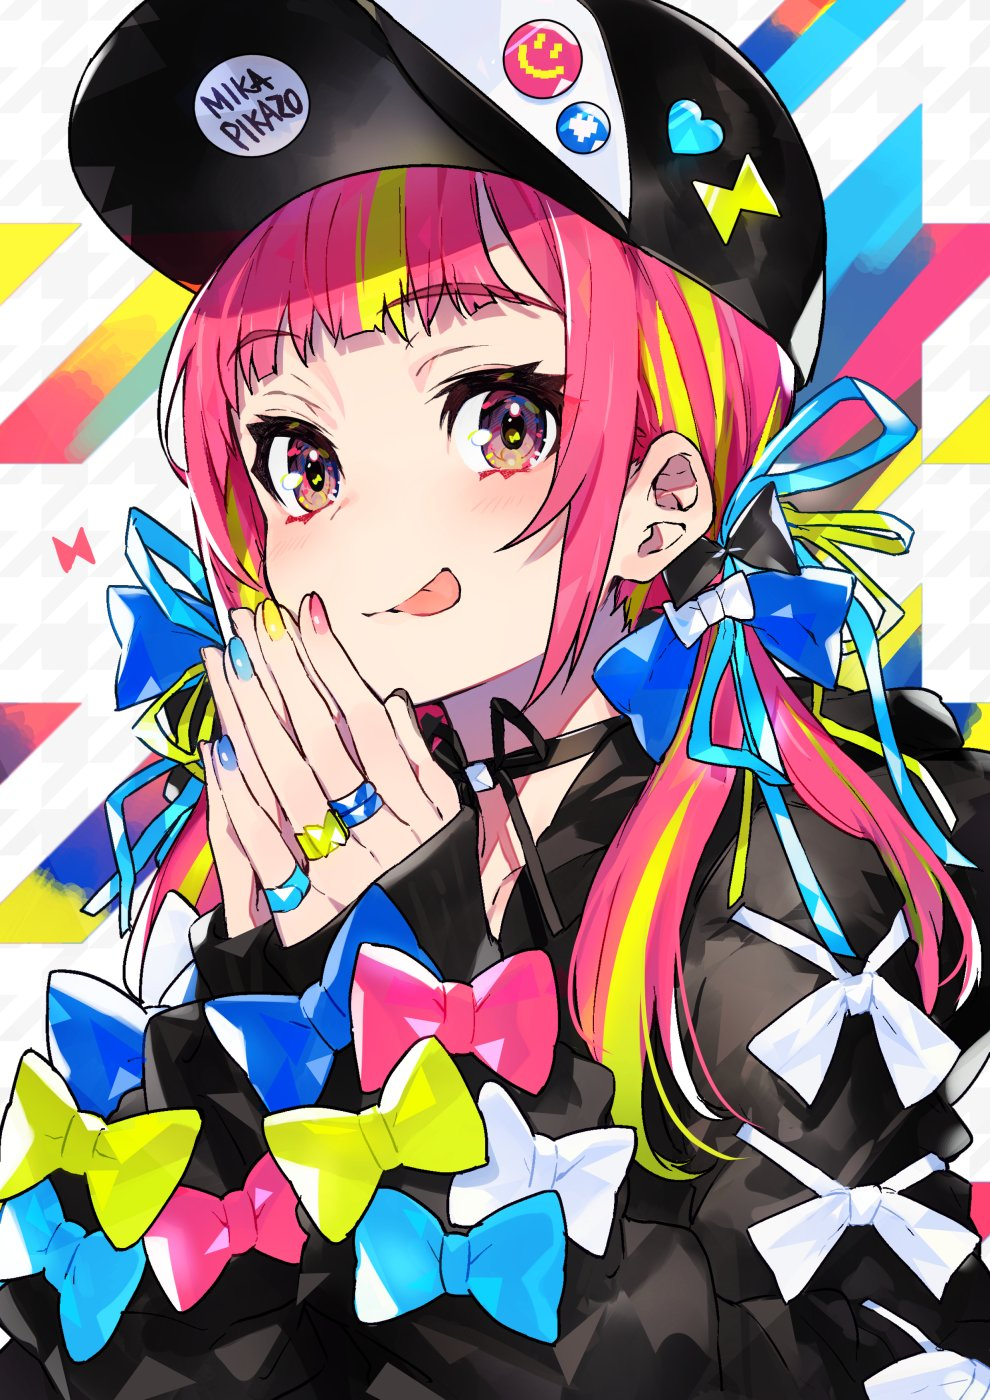 Mika Pikazo🚀PARCO全国ツアー on【2020】 アニメファンアート, キュートなアート, アニメ